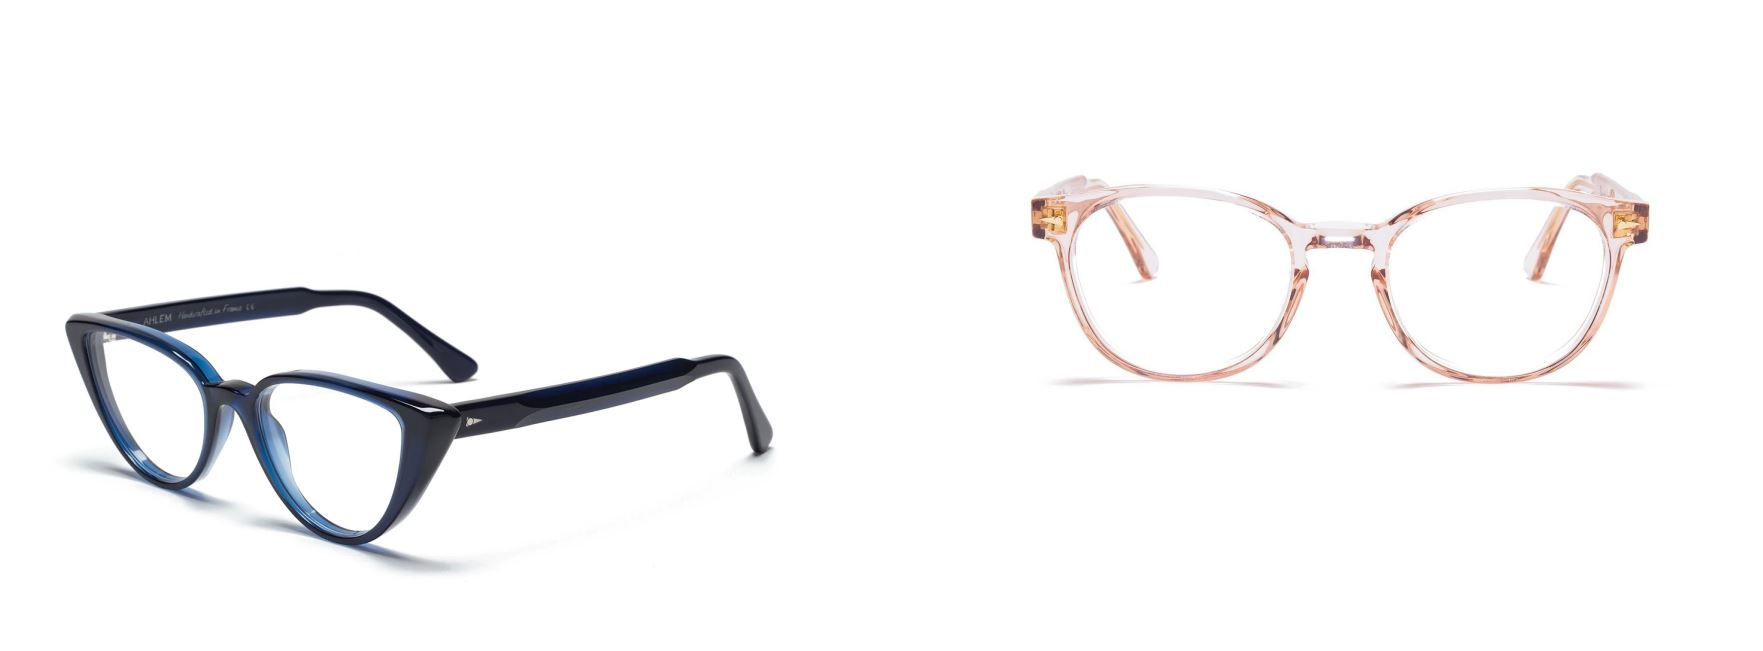 AHLEM Spectacles: Blue and Golden